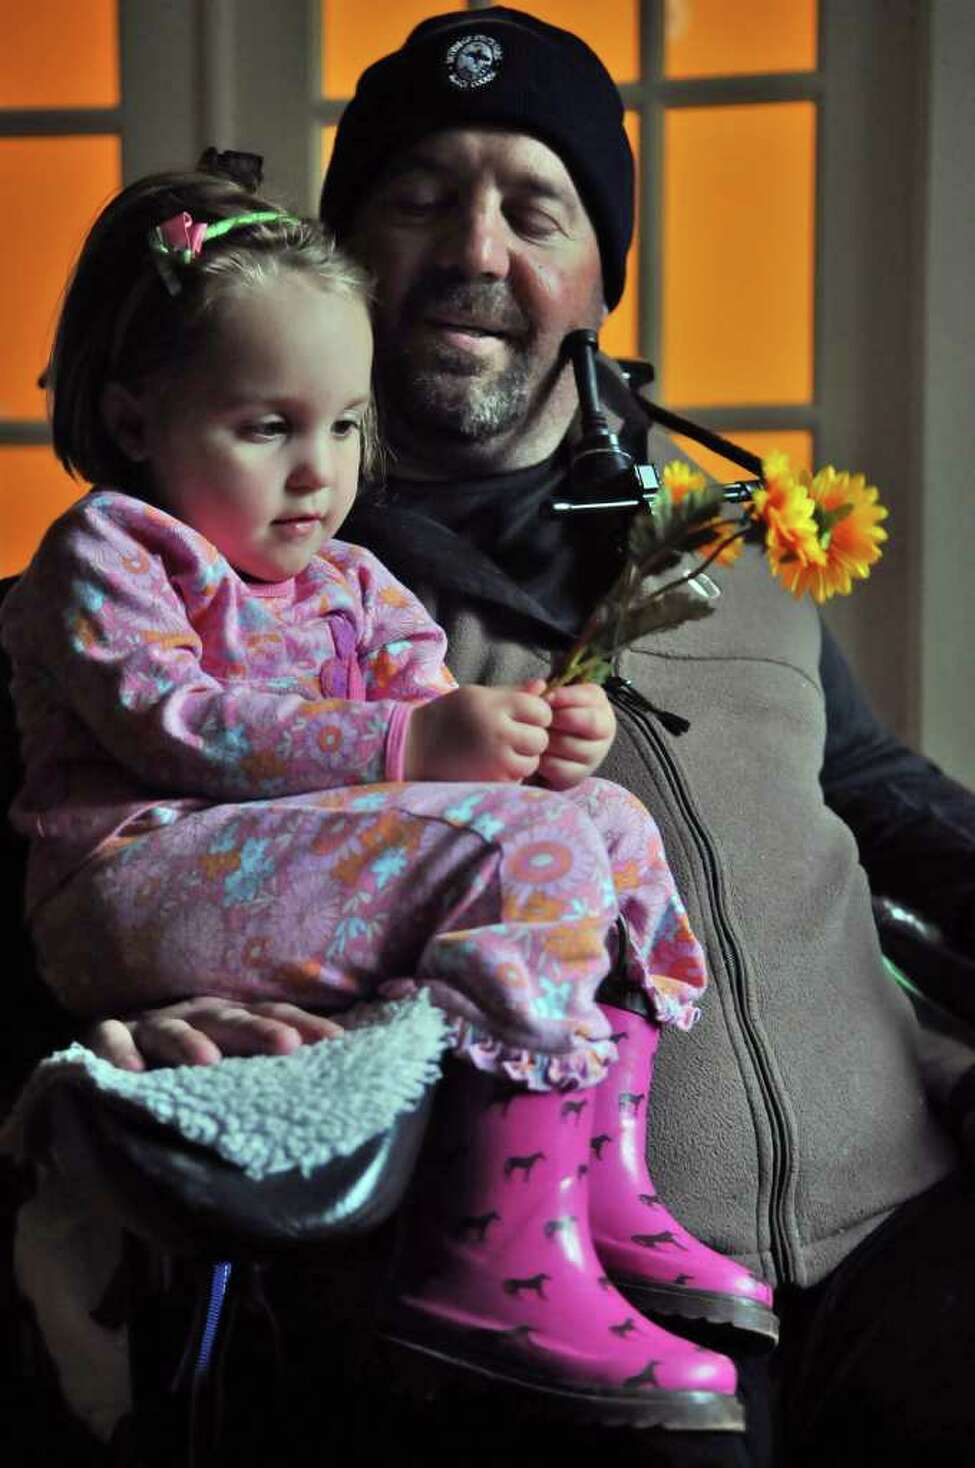 Michael Jones, a recreational rugby player who was paralyzed in February 2010, spends some time with his daughter Liliana, 3, in the kitchen of their home on Wednesday May 4, 2011 in Delmar, N.Y. (Philip Kamrass / Times Union)